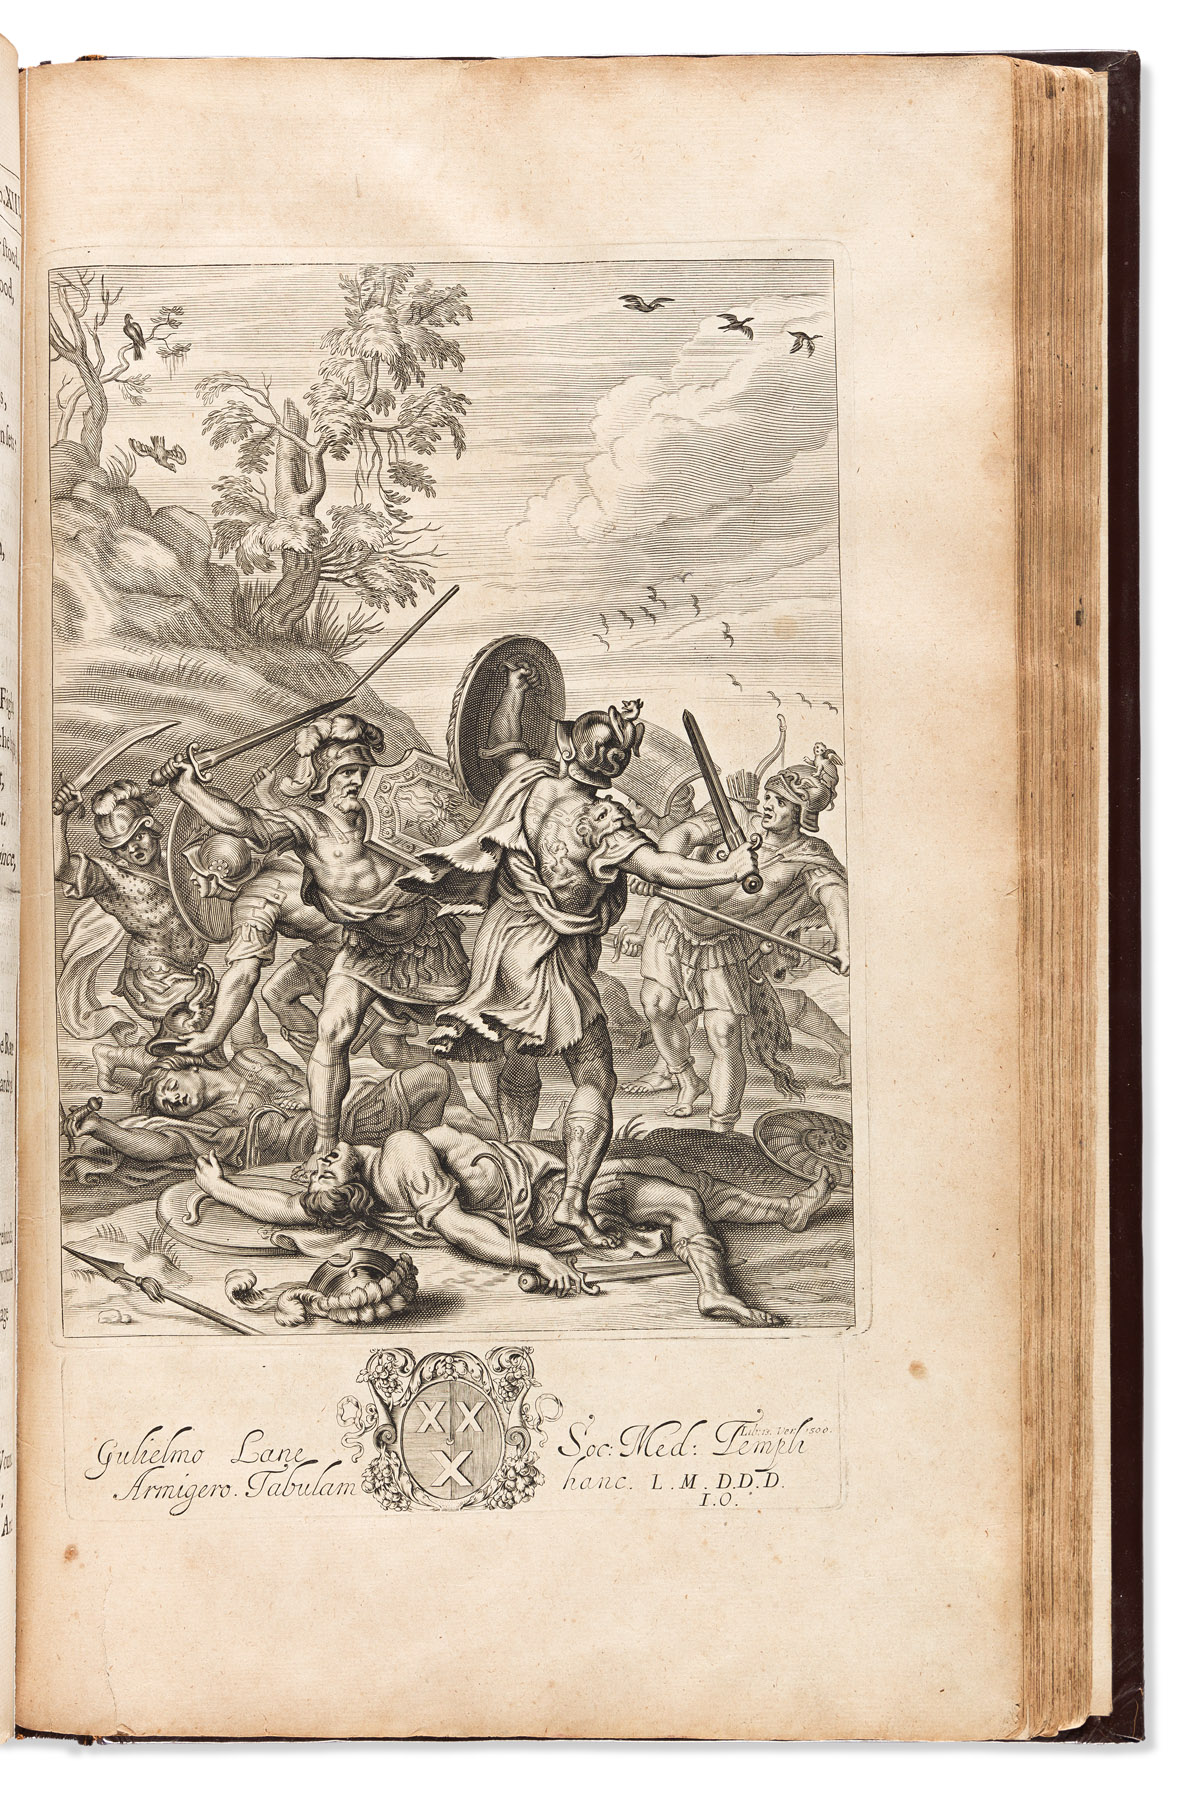 Homer. John Ogilby (1600-1676) trans. Homer his Iliads Translated, Adornd with Sculpture, and Illustrated with Annotations.